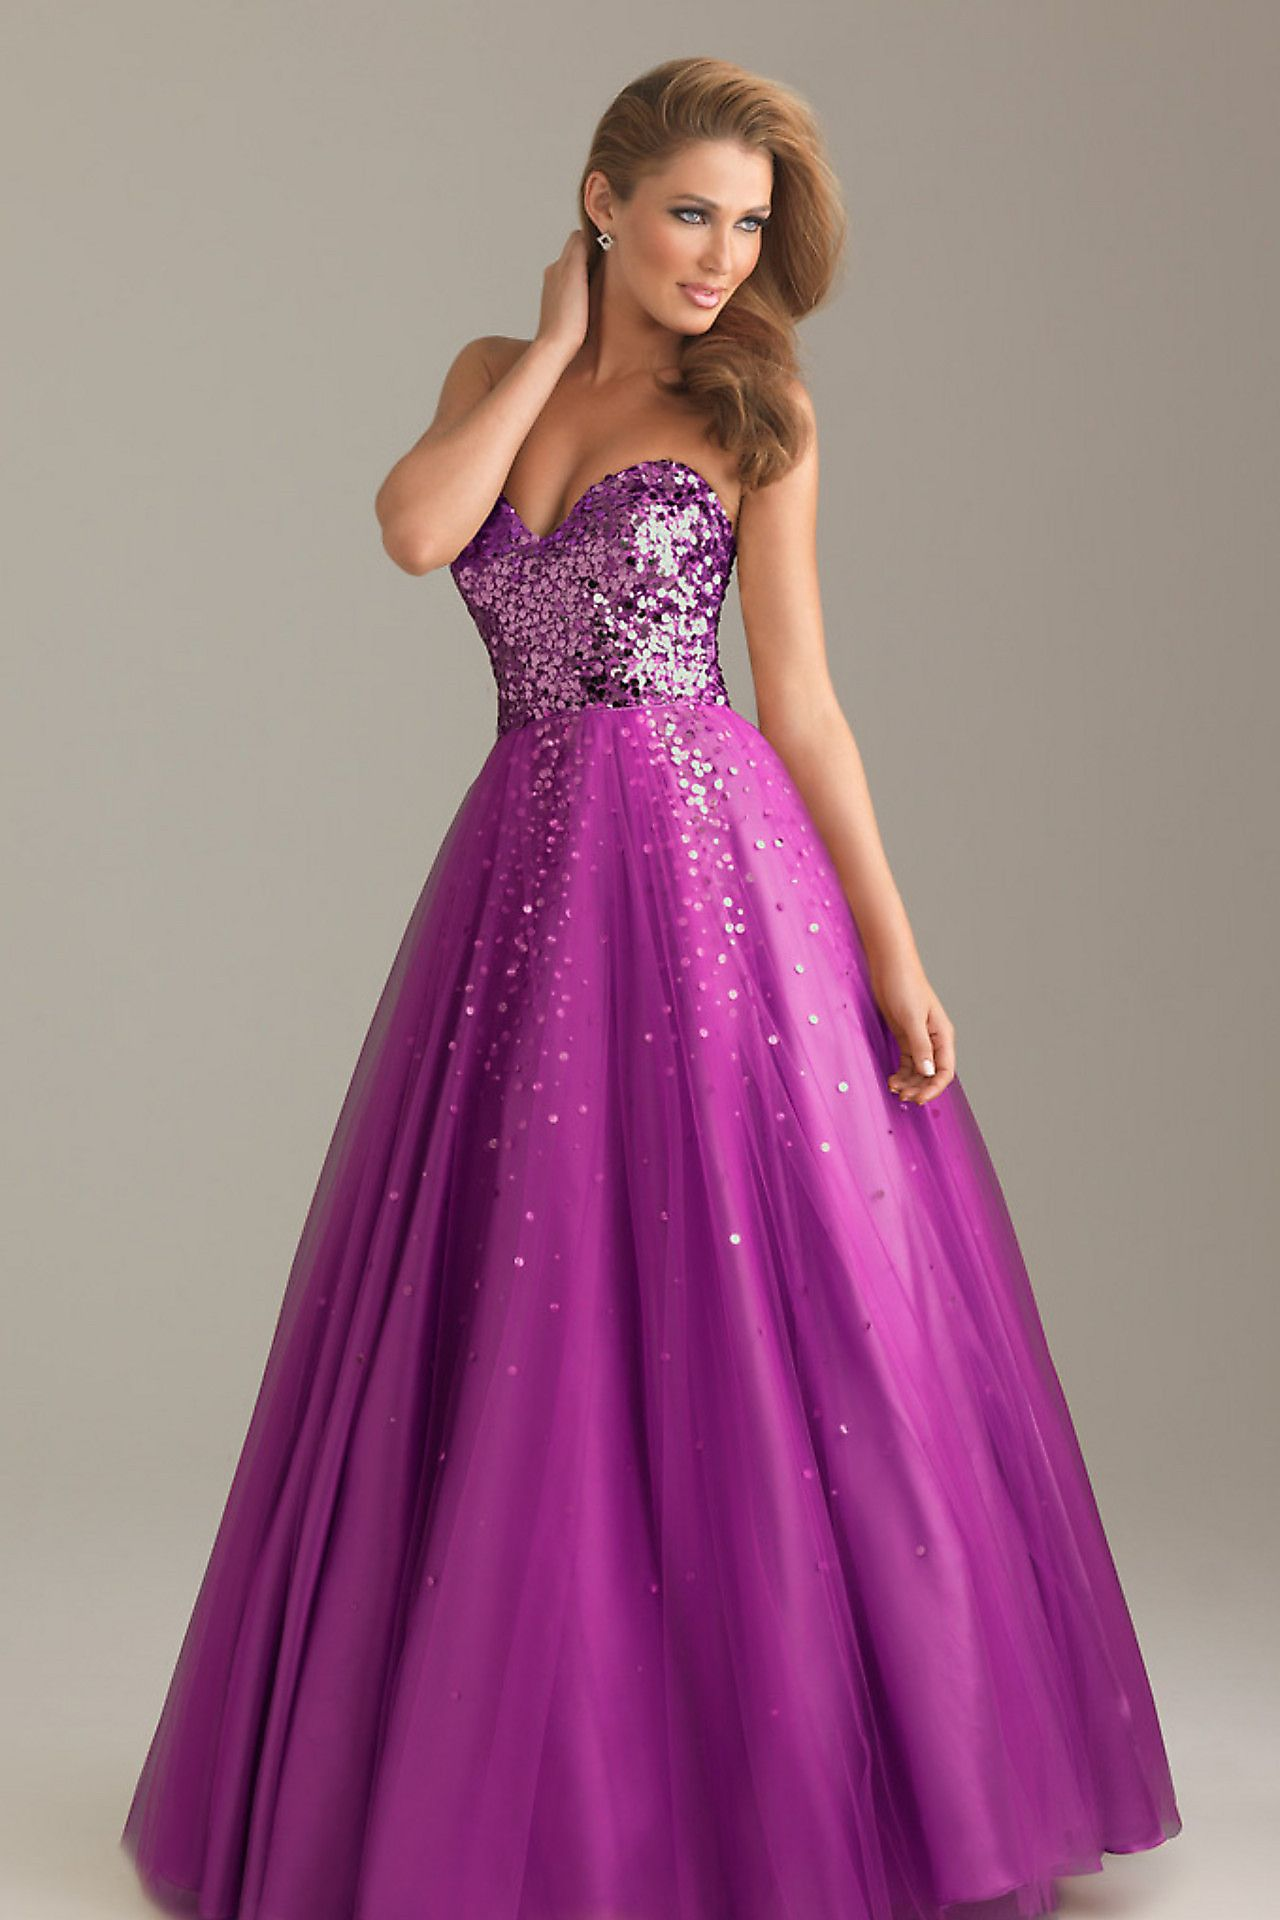 Best affordable wedding dress shops london  Cheap Vogue Prom Dresses Ball Gown Sweetheart Floor length Chiffon